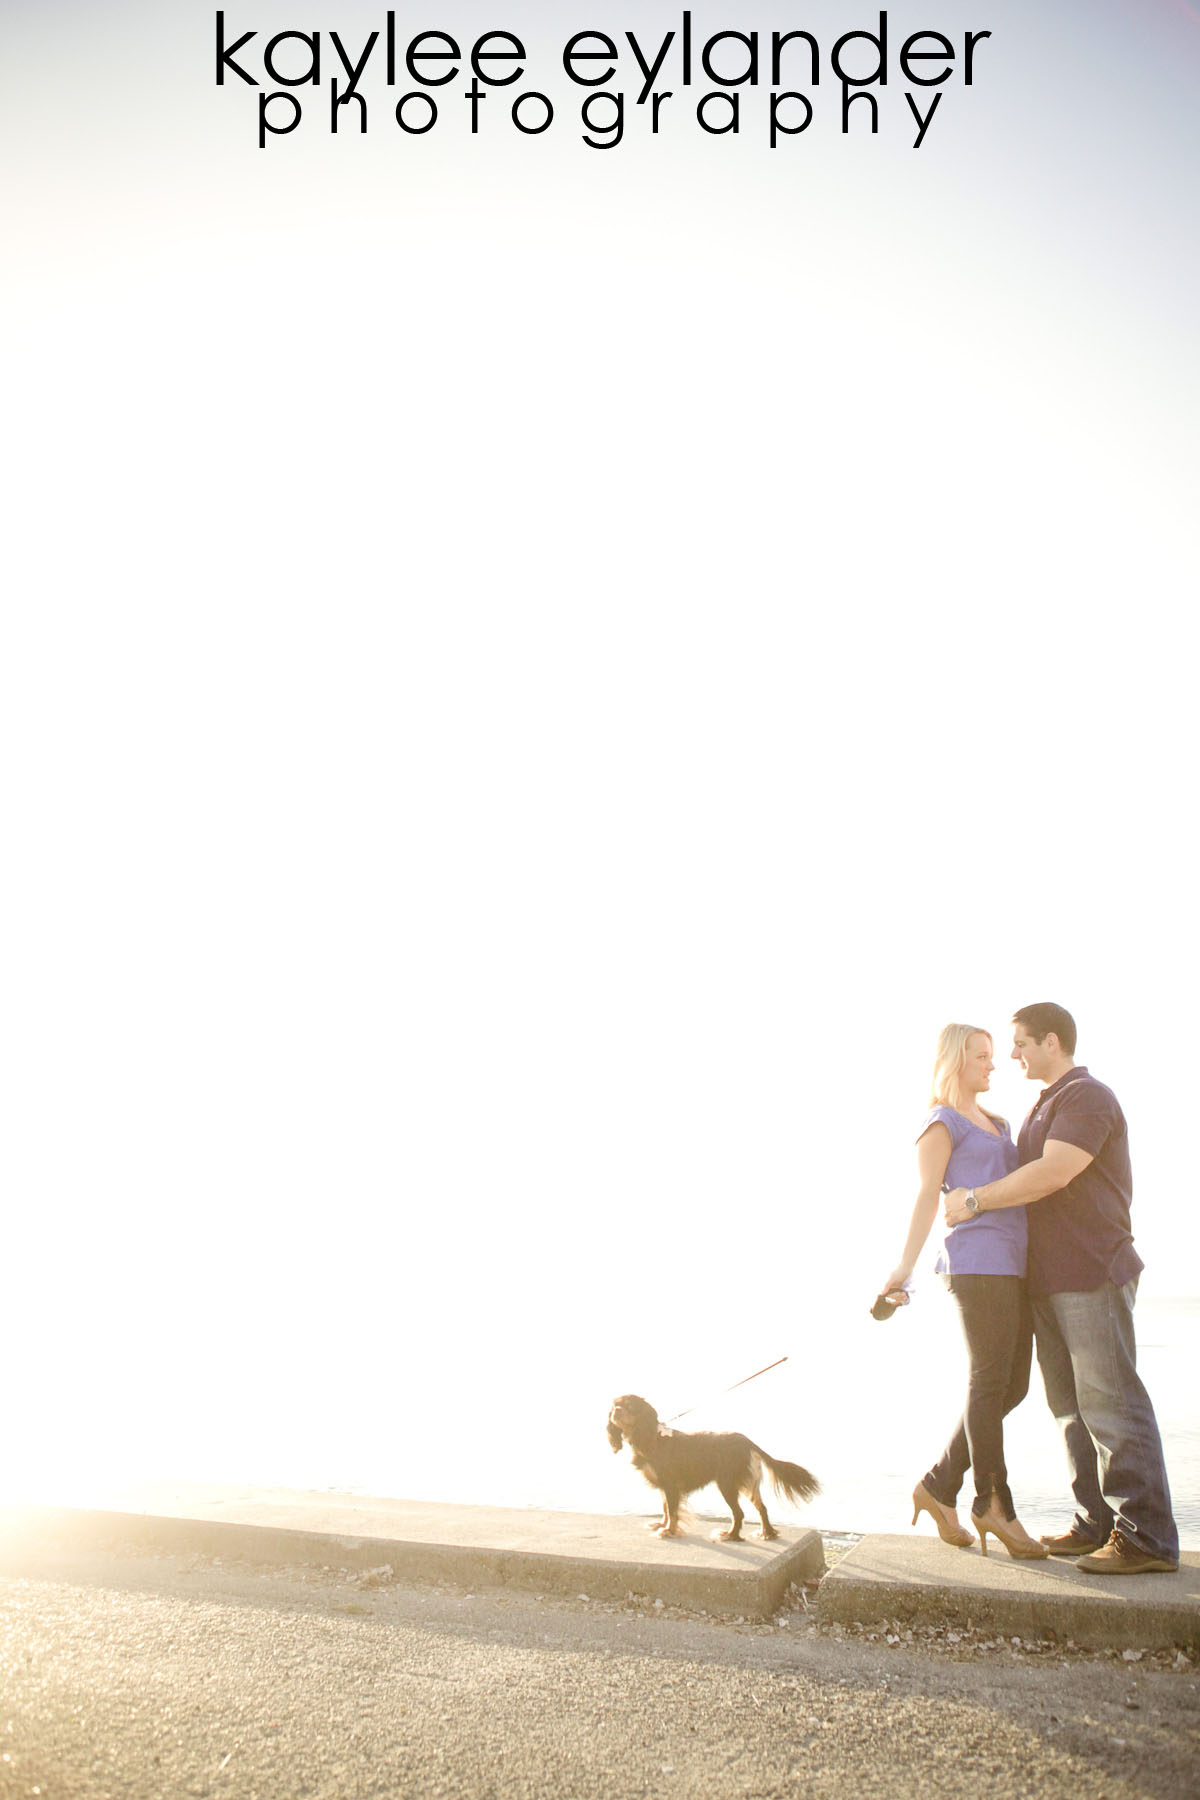 sarah adam web 32 2 Engagement Session at Alki Beach | Sun & Sand make me happy! | Kaylee Eylander